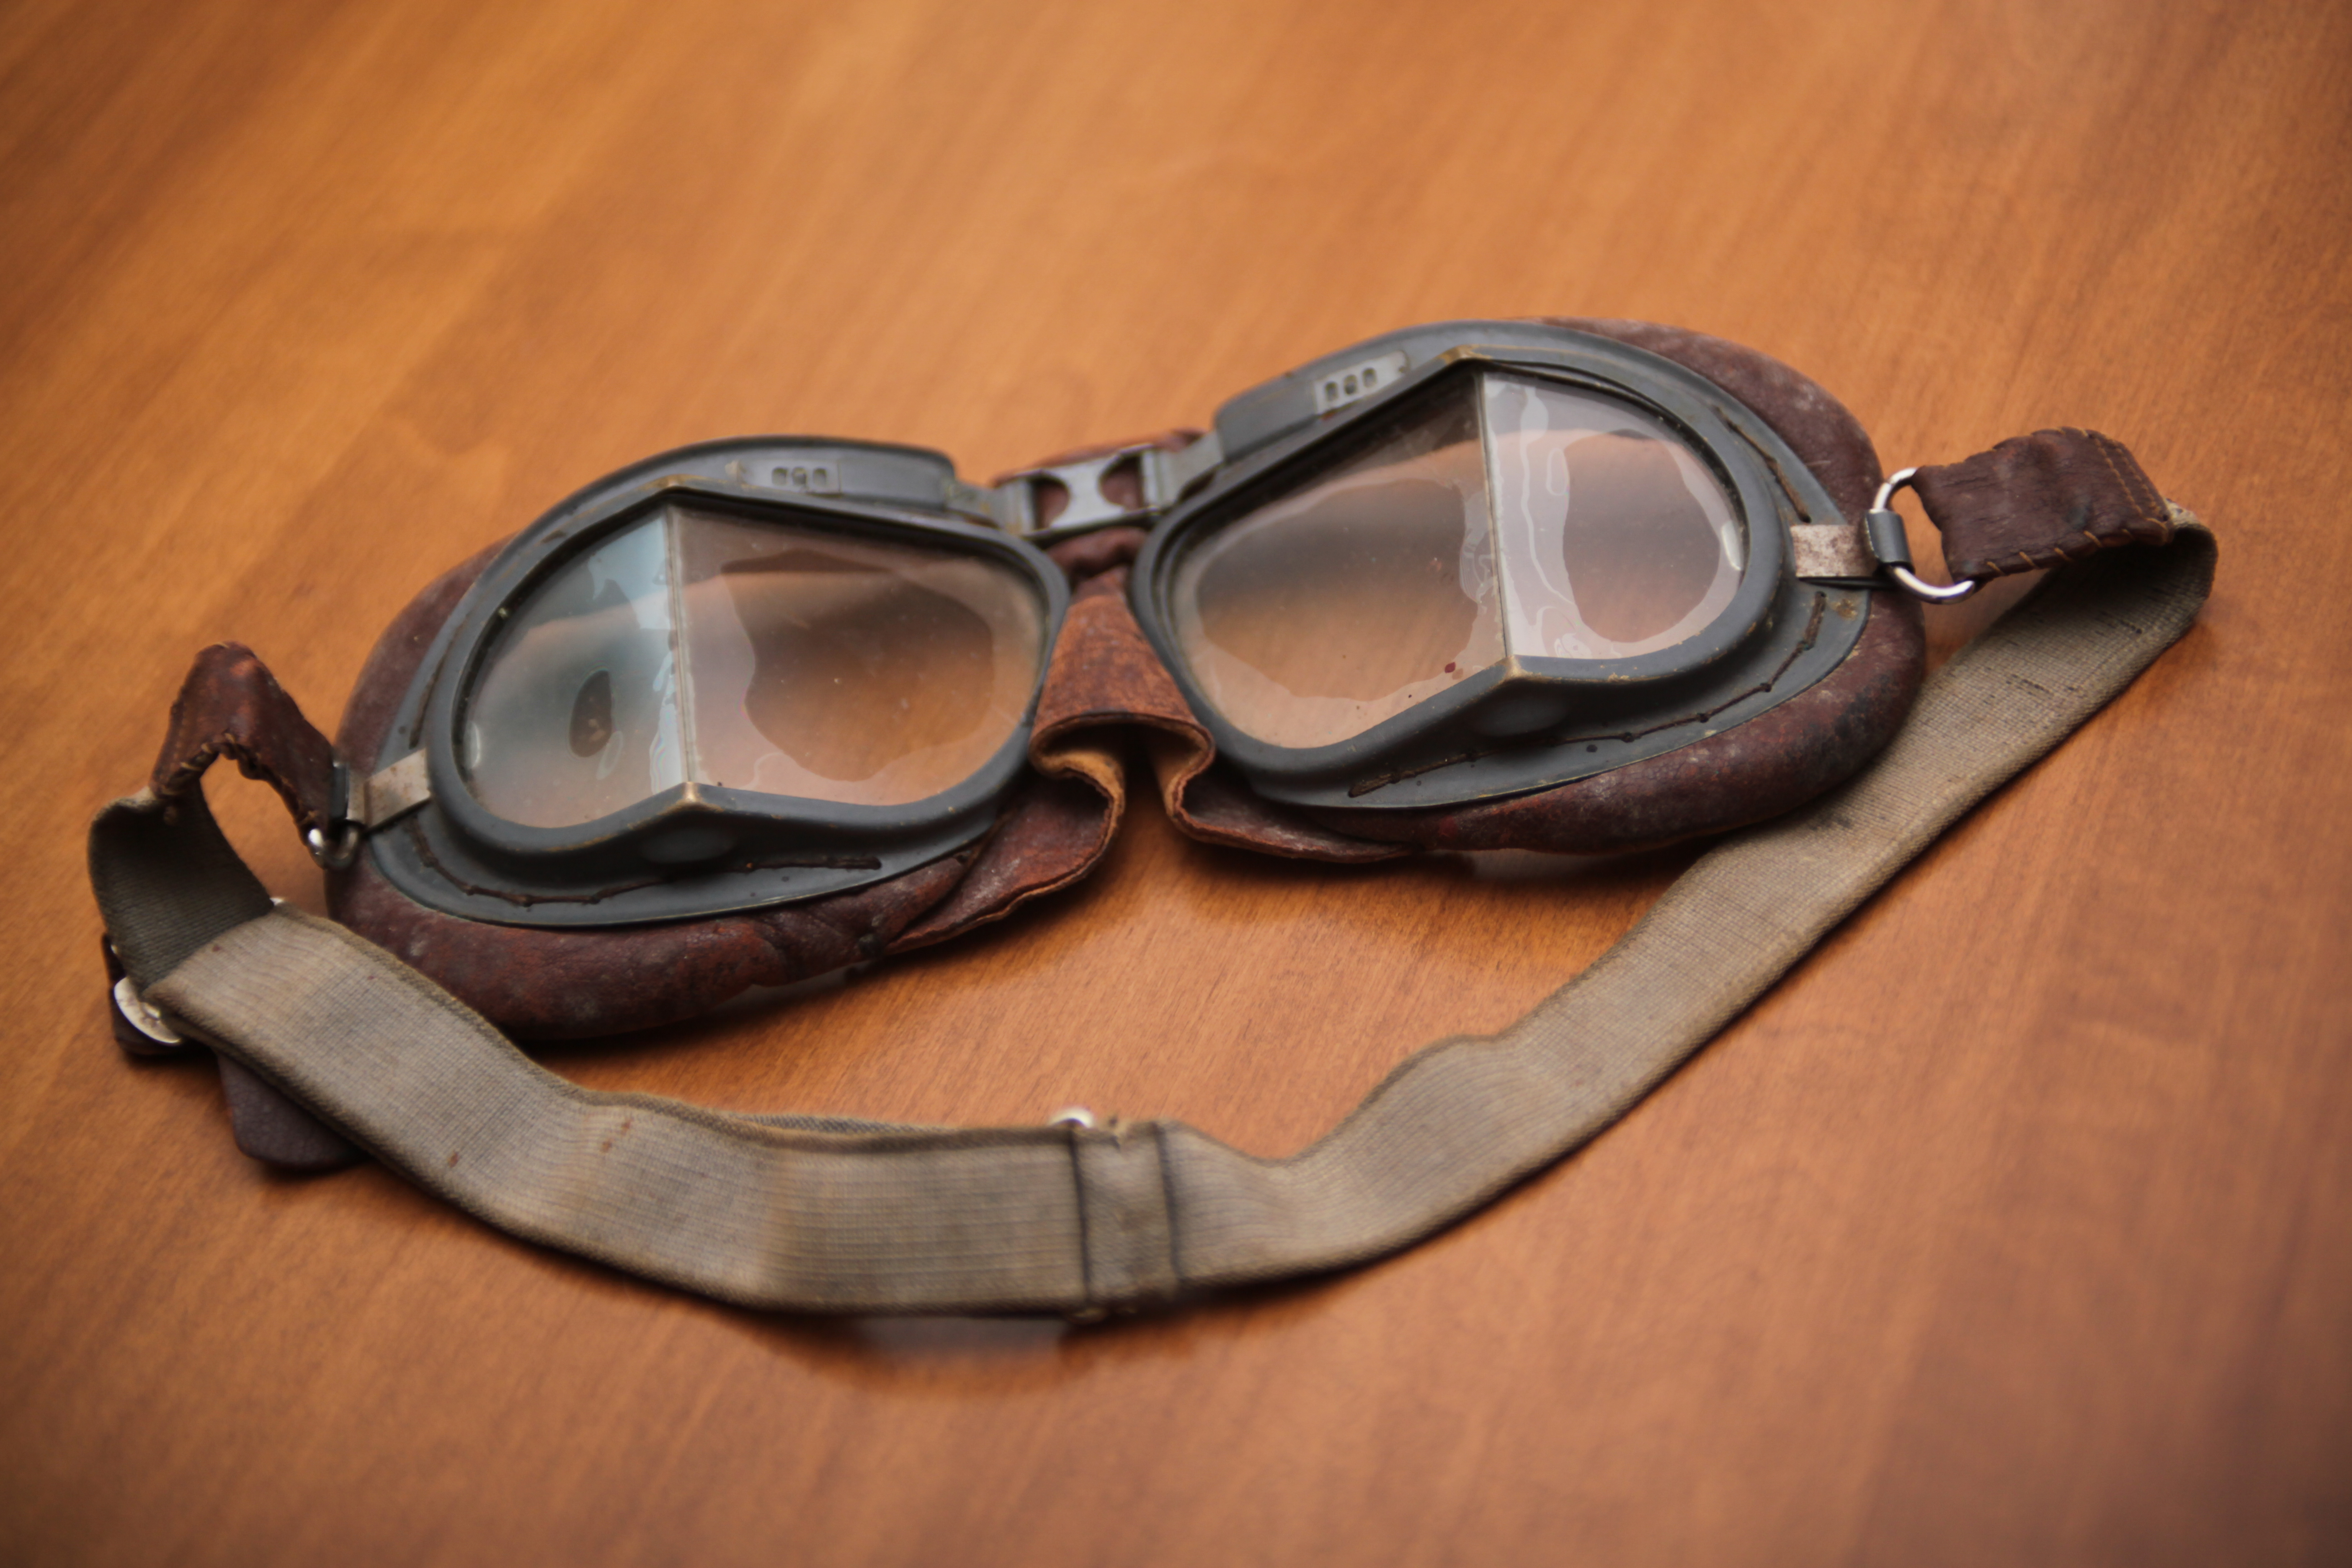 The goggles he wore while piloting his Spitfire. (Robert Guertin/CBC)